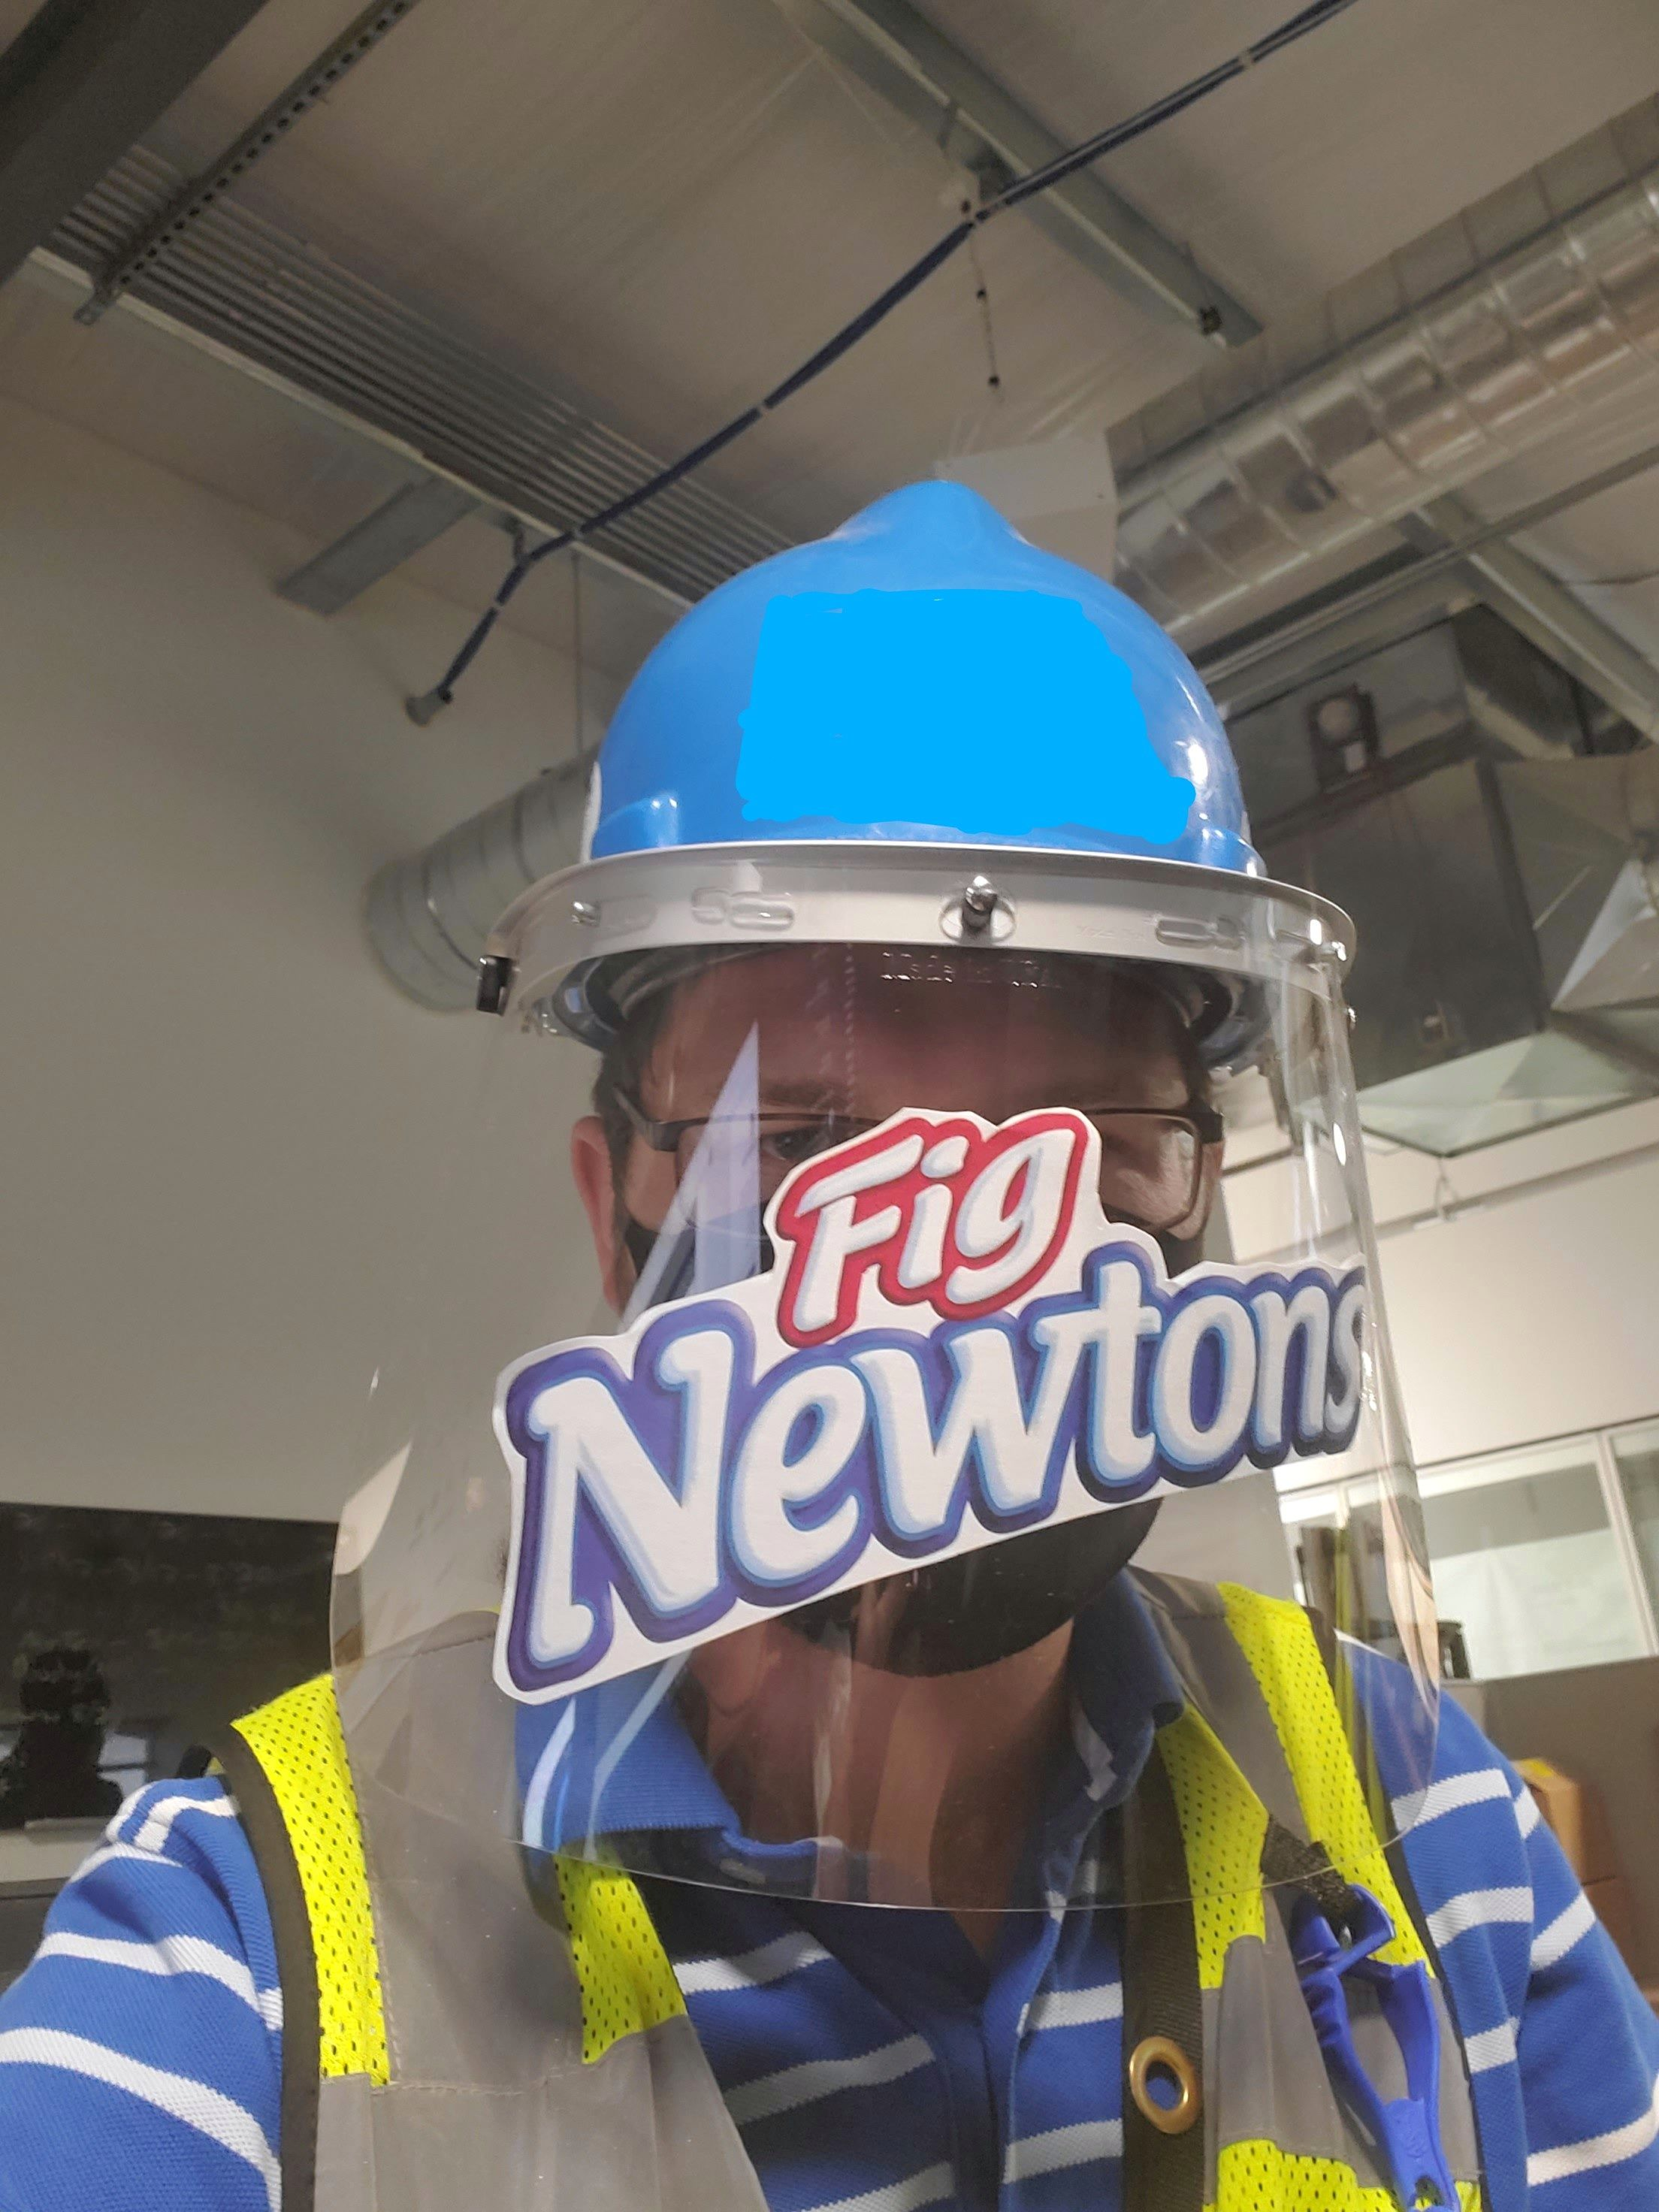 Face shields are now required on my job site. This sticker is dangerous and inconvenient, but I do love Fig Newtons.